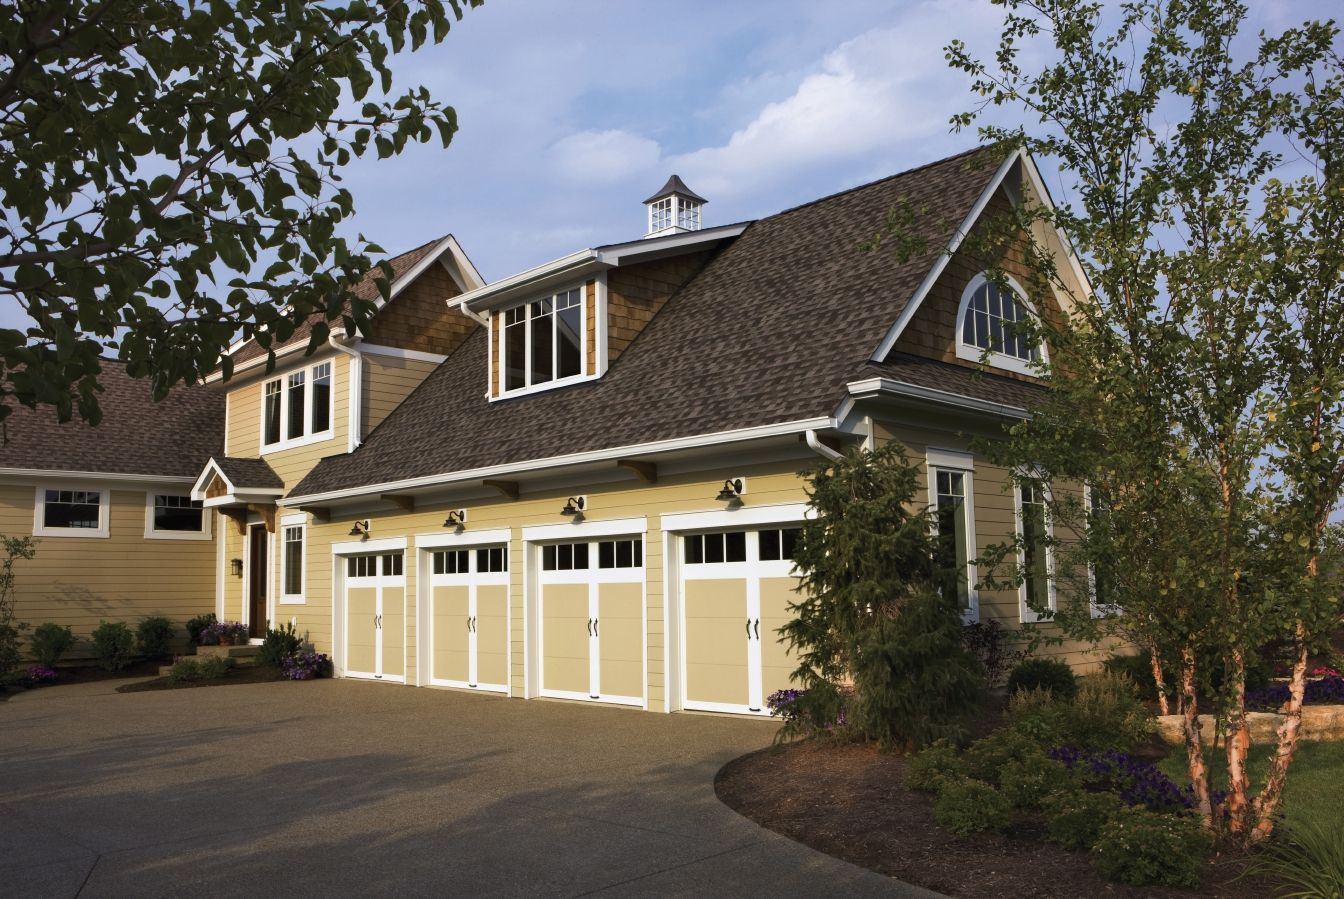 Simple Clean Lines For A Coastal Carriage House Garage Or A Craftsman Home Clopay Coachman Colle Carriage House Doors Garage Doors Carriage House Garage Doors